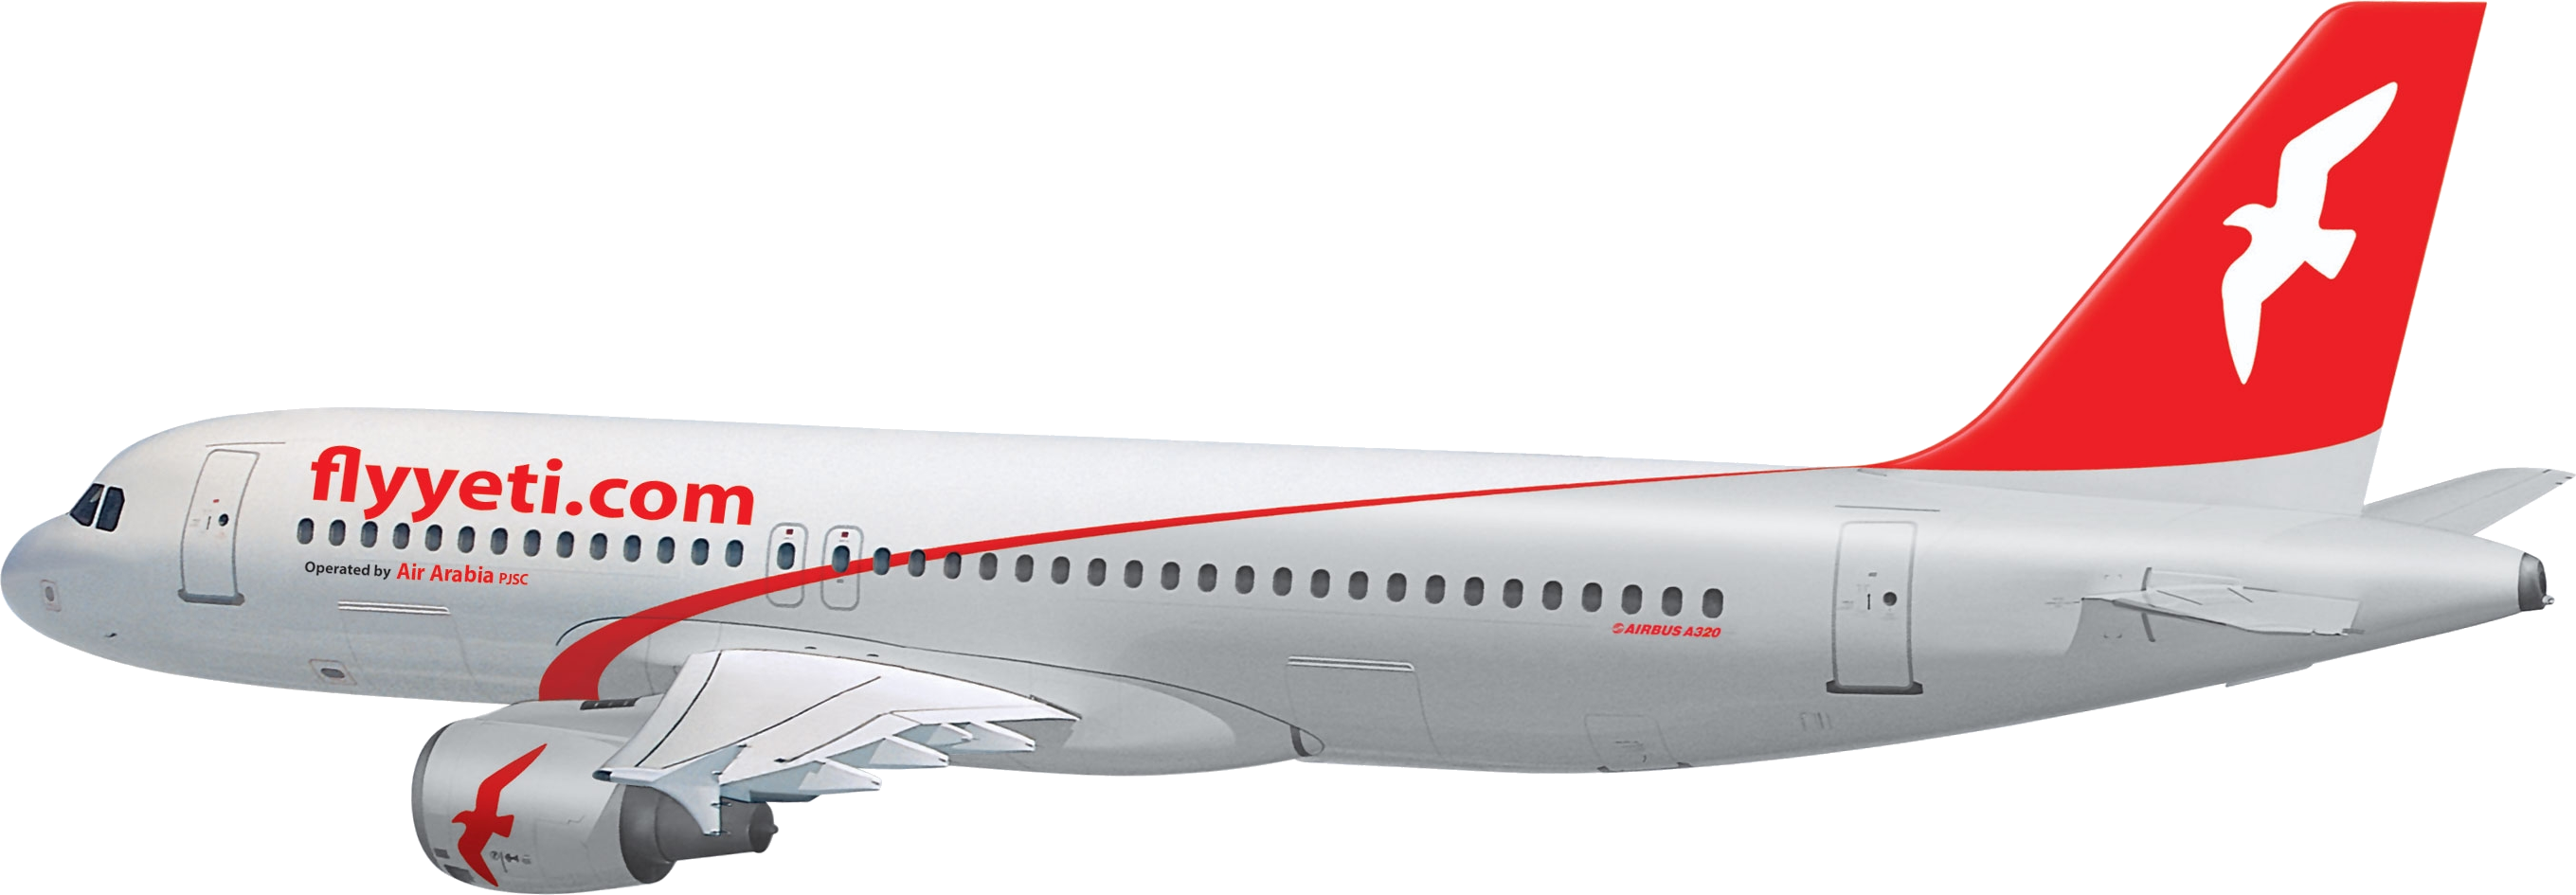 Planes png images free. Clipart plane jumbo jet